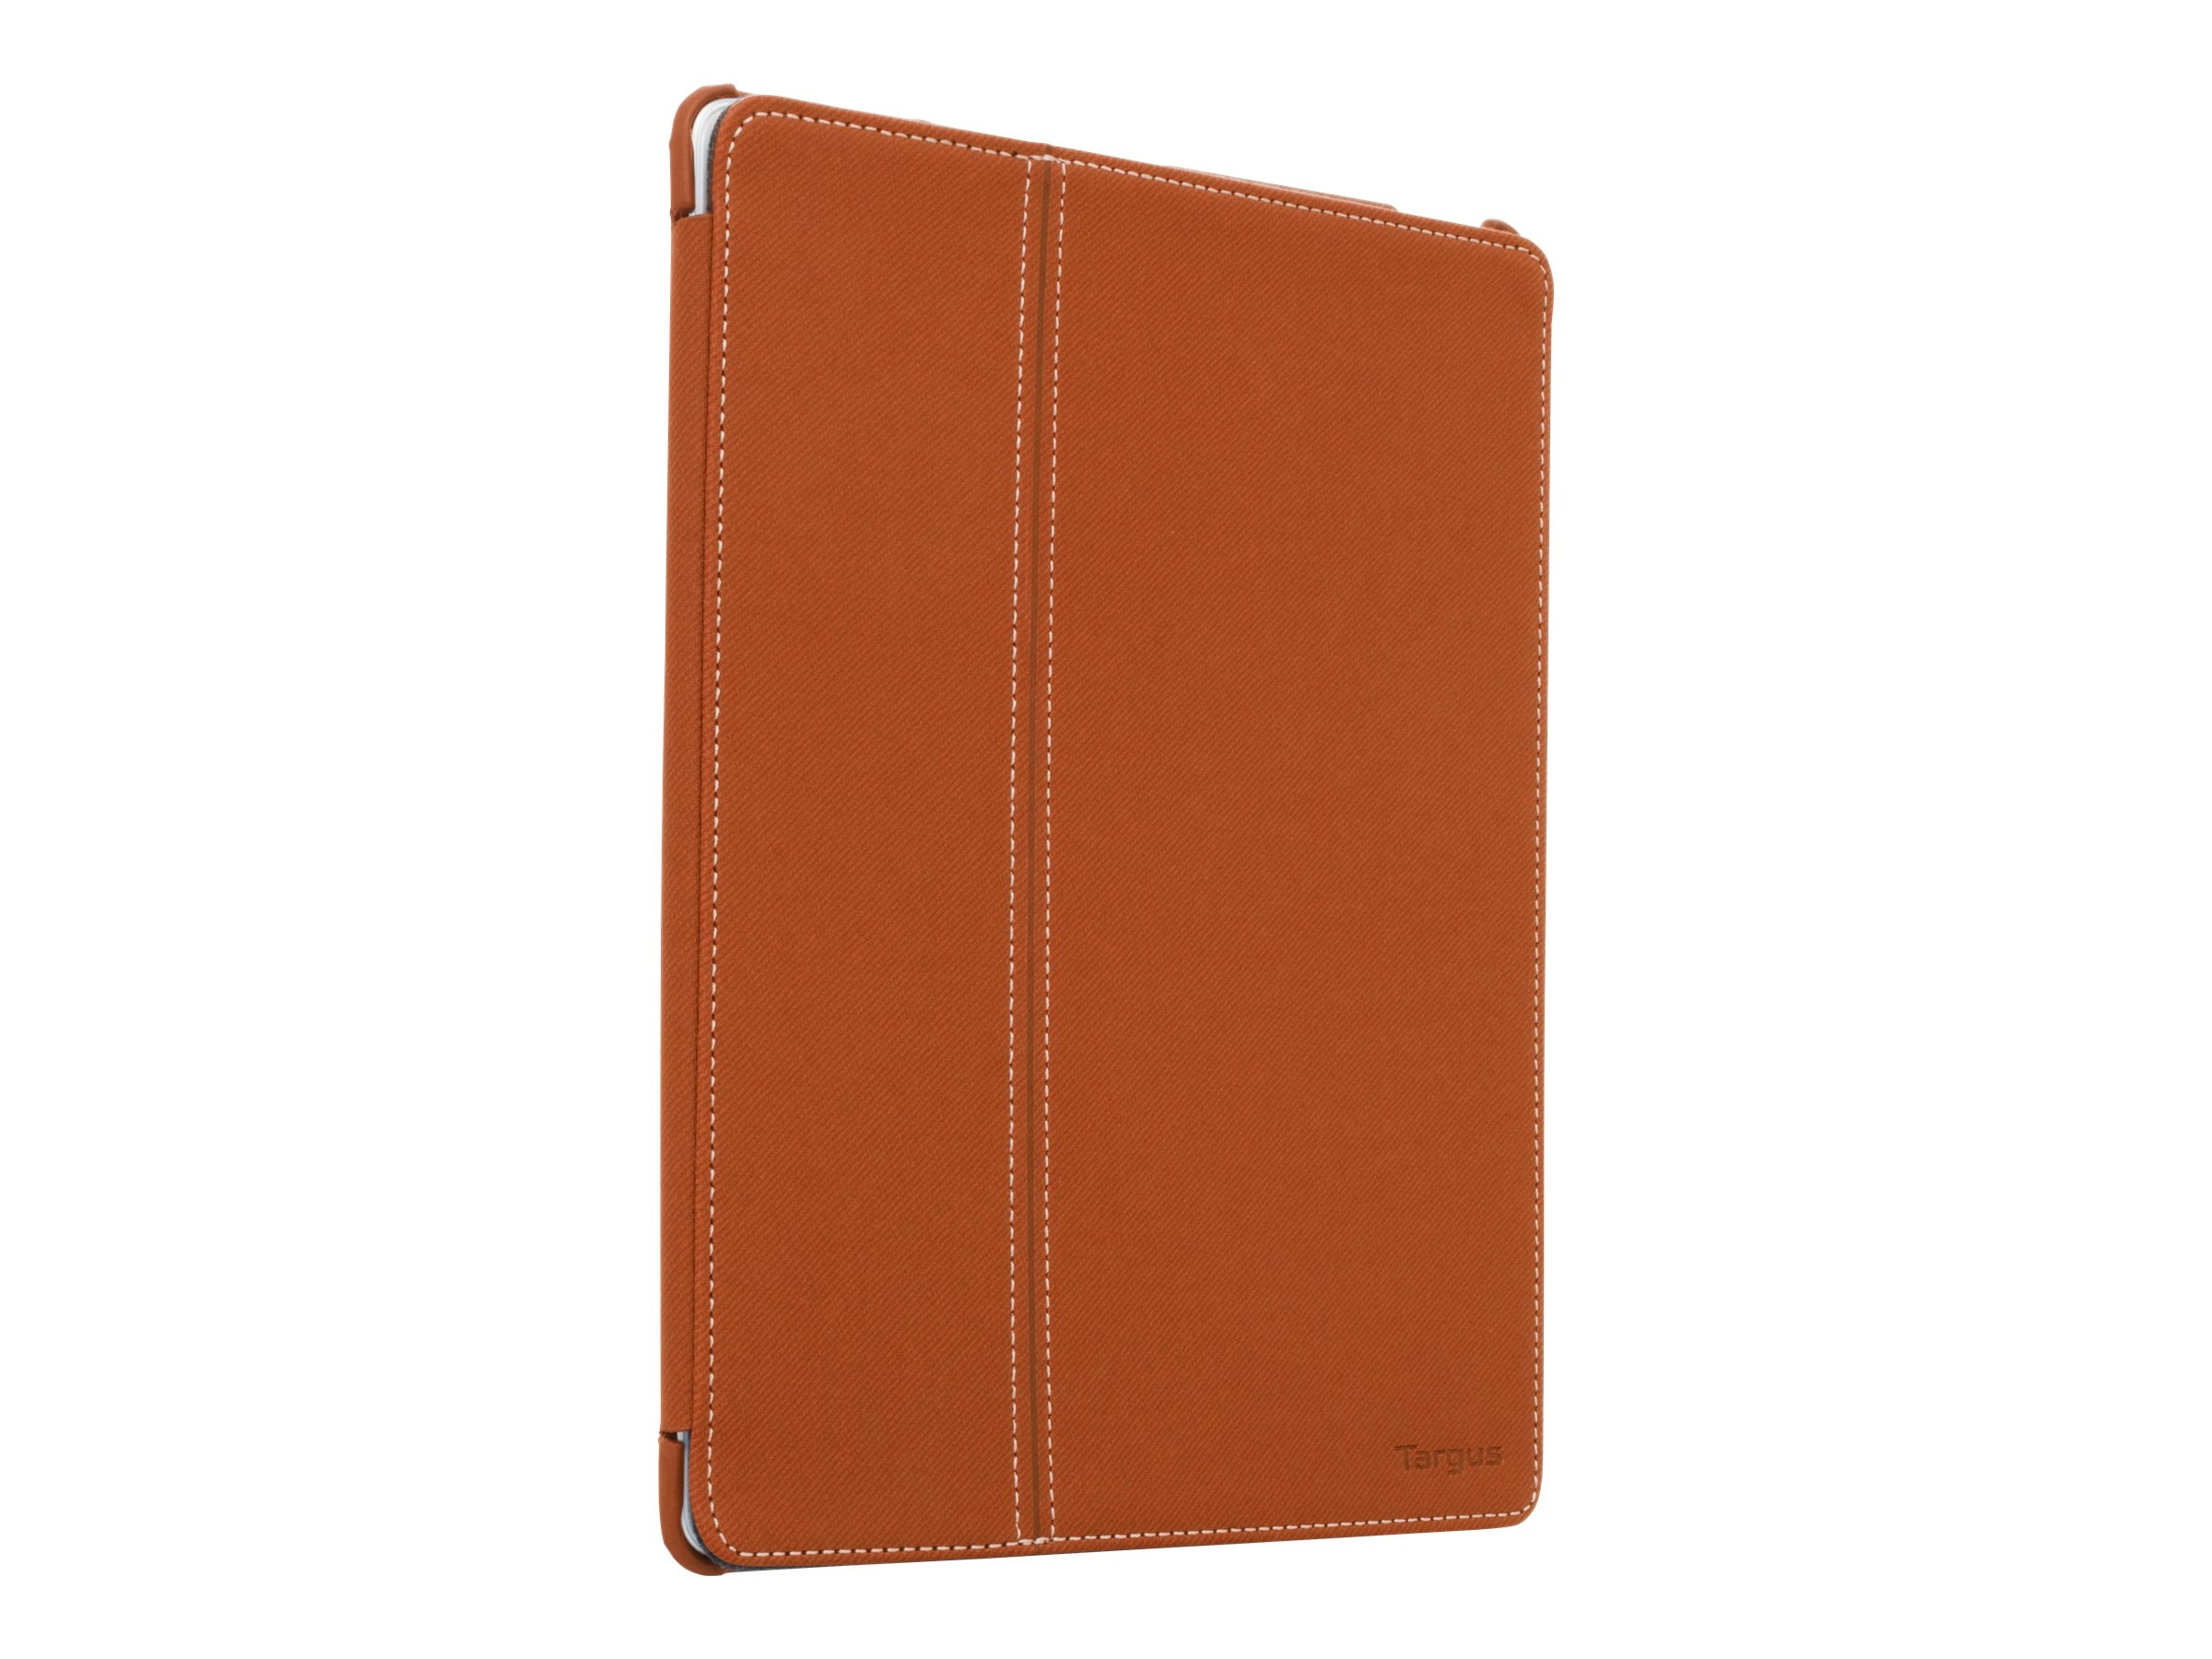 Targus Slim Case for iPad 3, Orange, THD00603US, 14436956, Carrying Cases - Tablets & eReaders